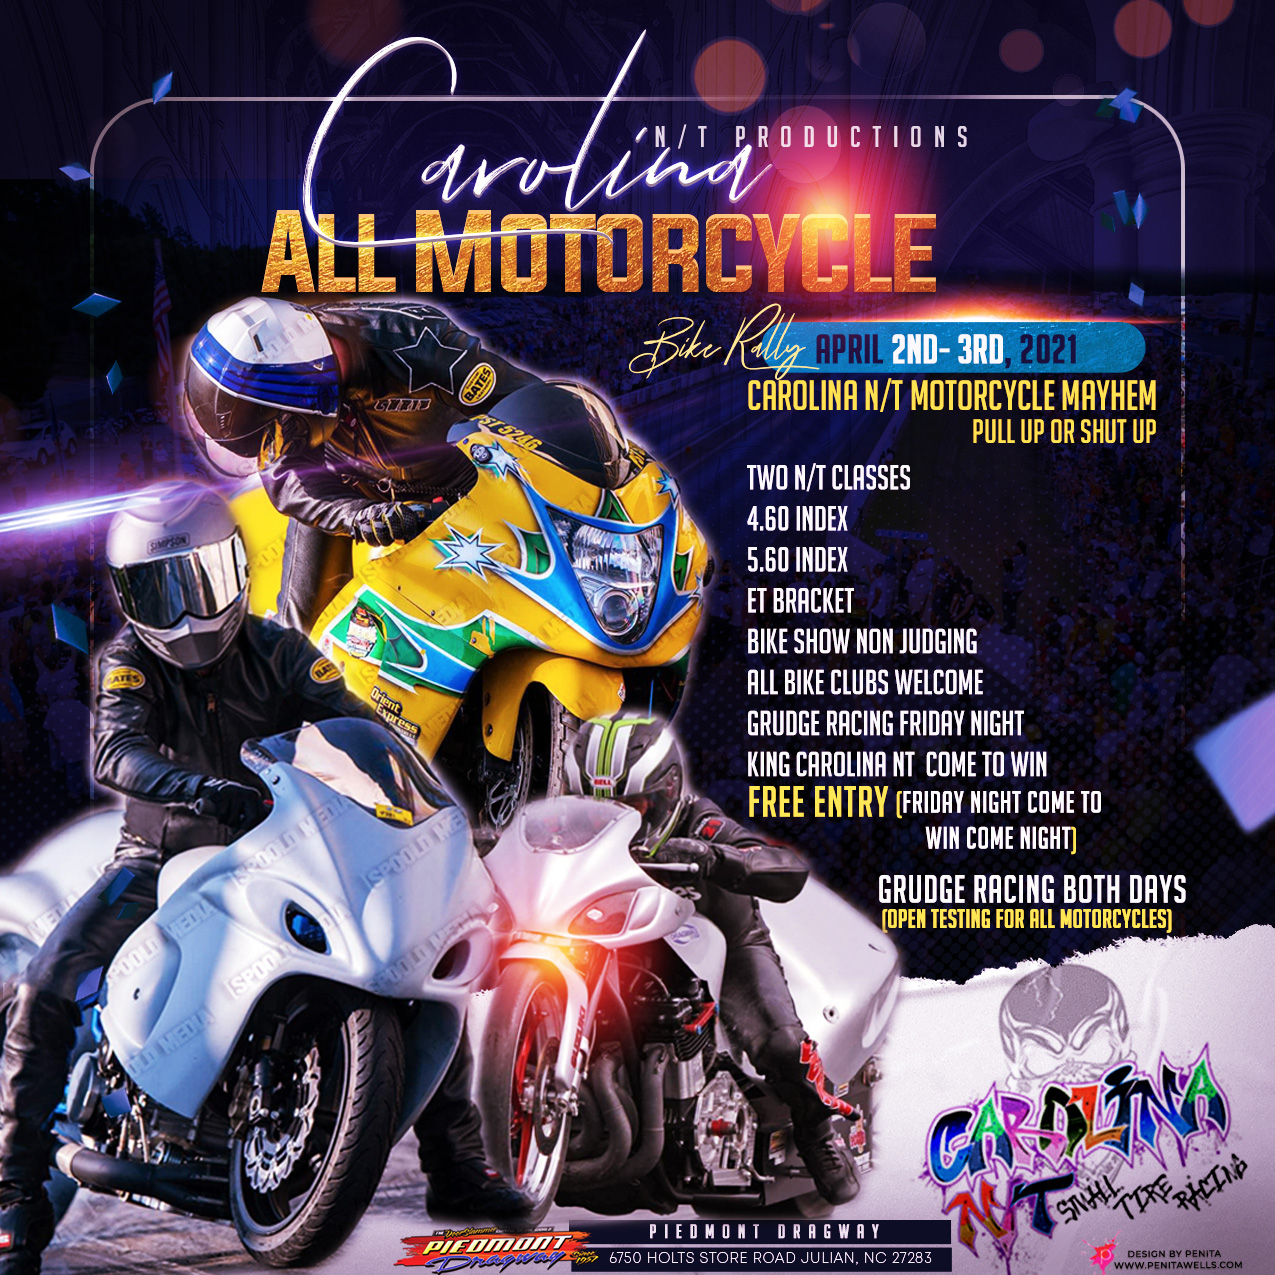 Carolina ALL Motorcycle Bike Rally April 2021